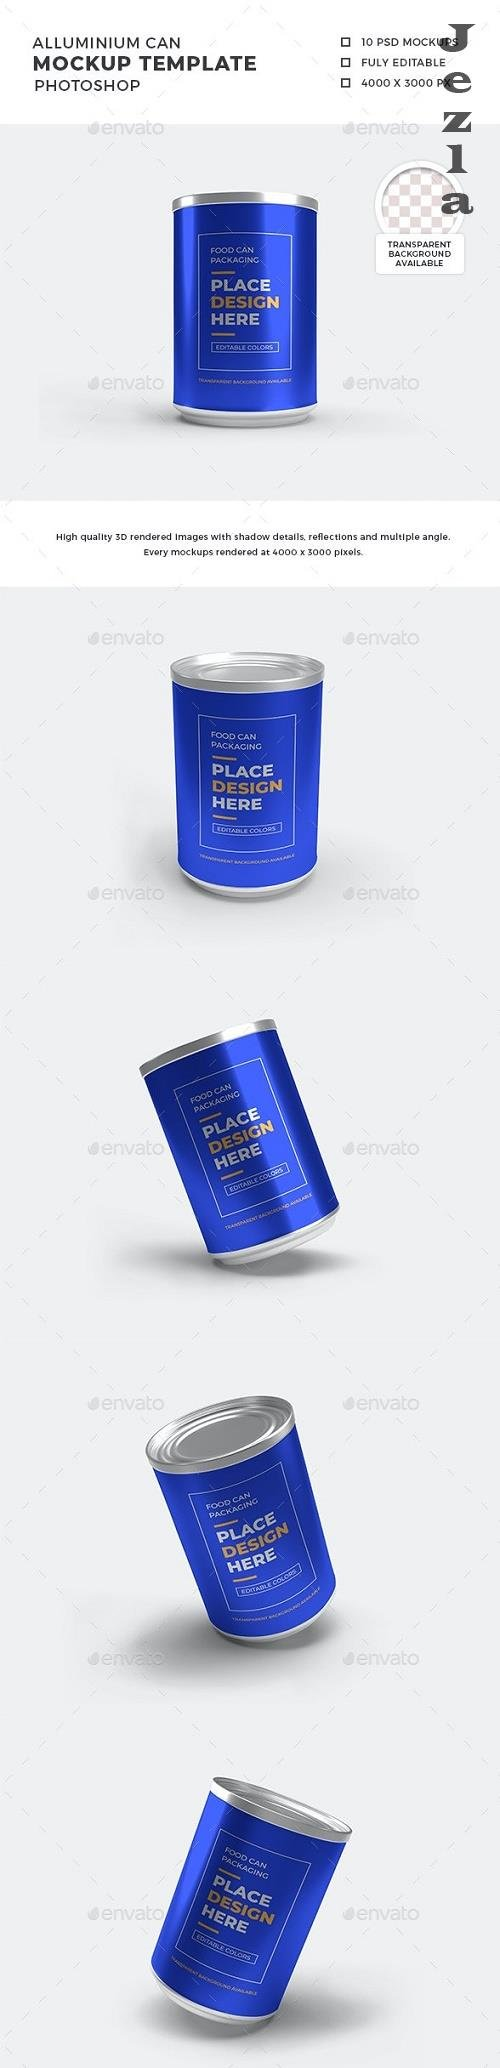 Alluminium Can Packaging Mockup Template Set - 29925143